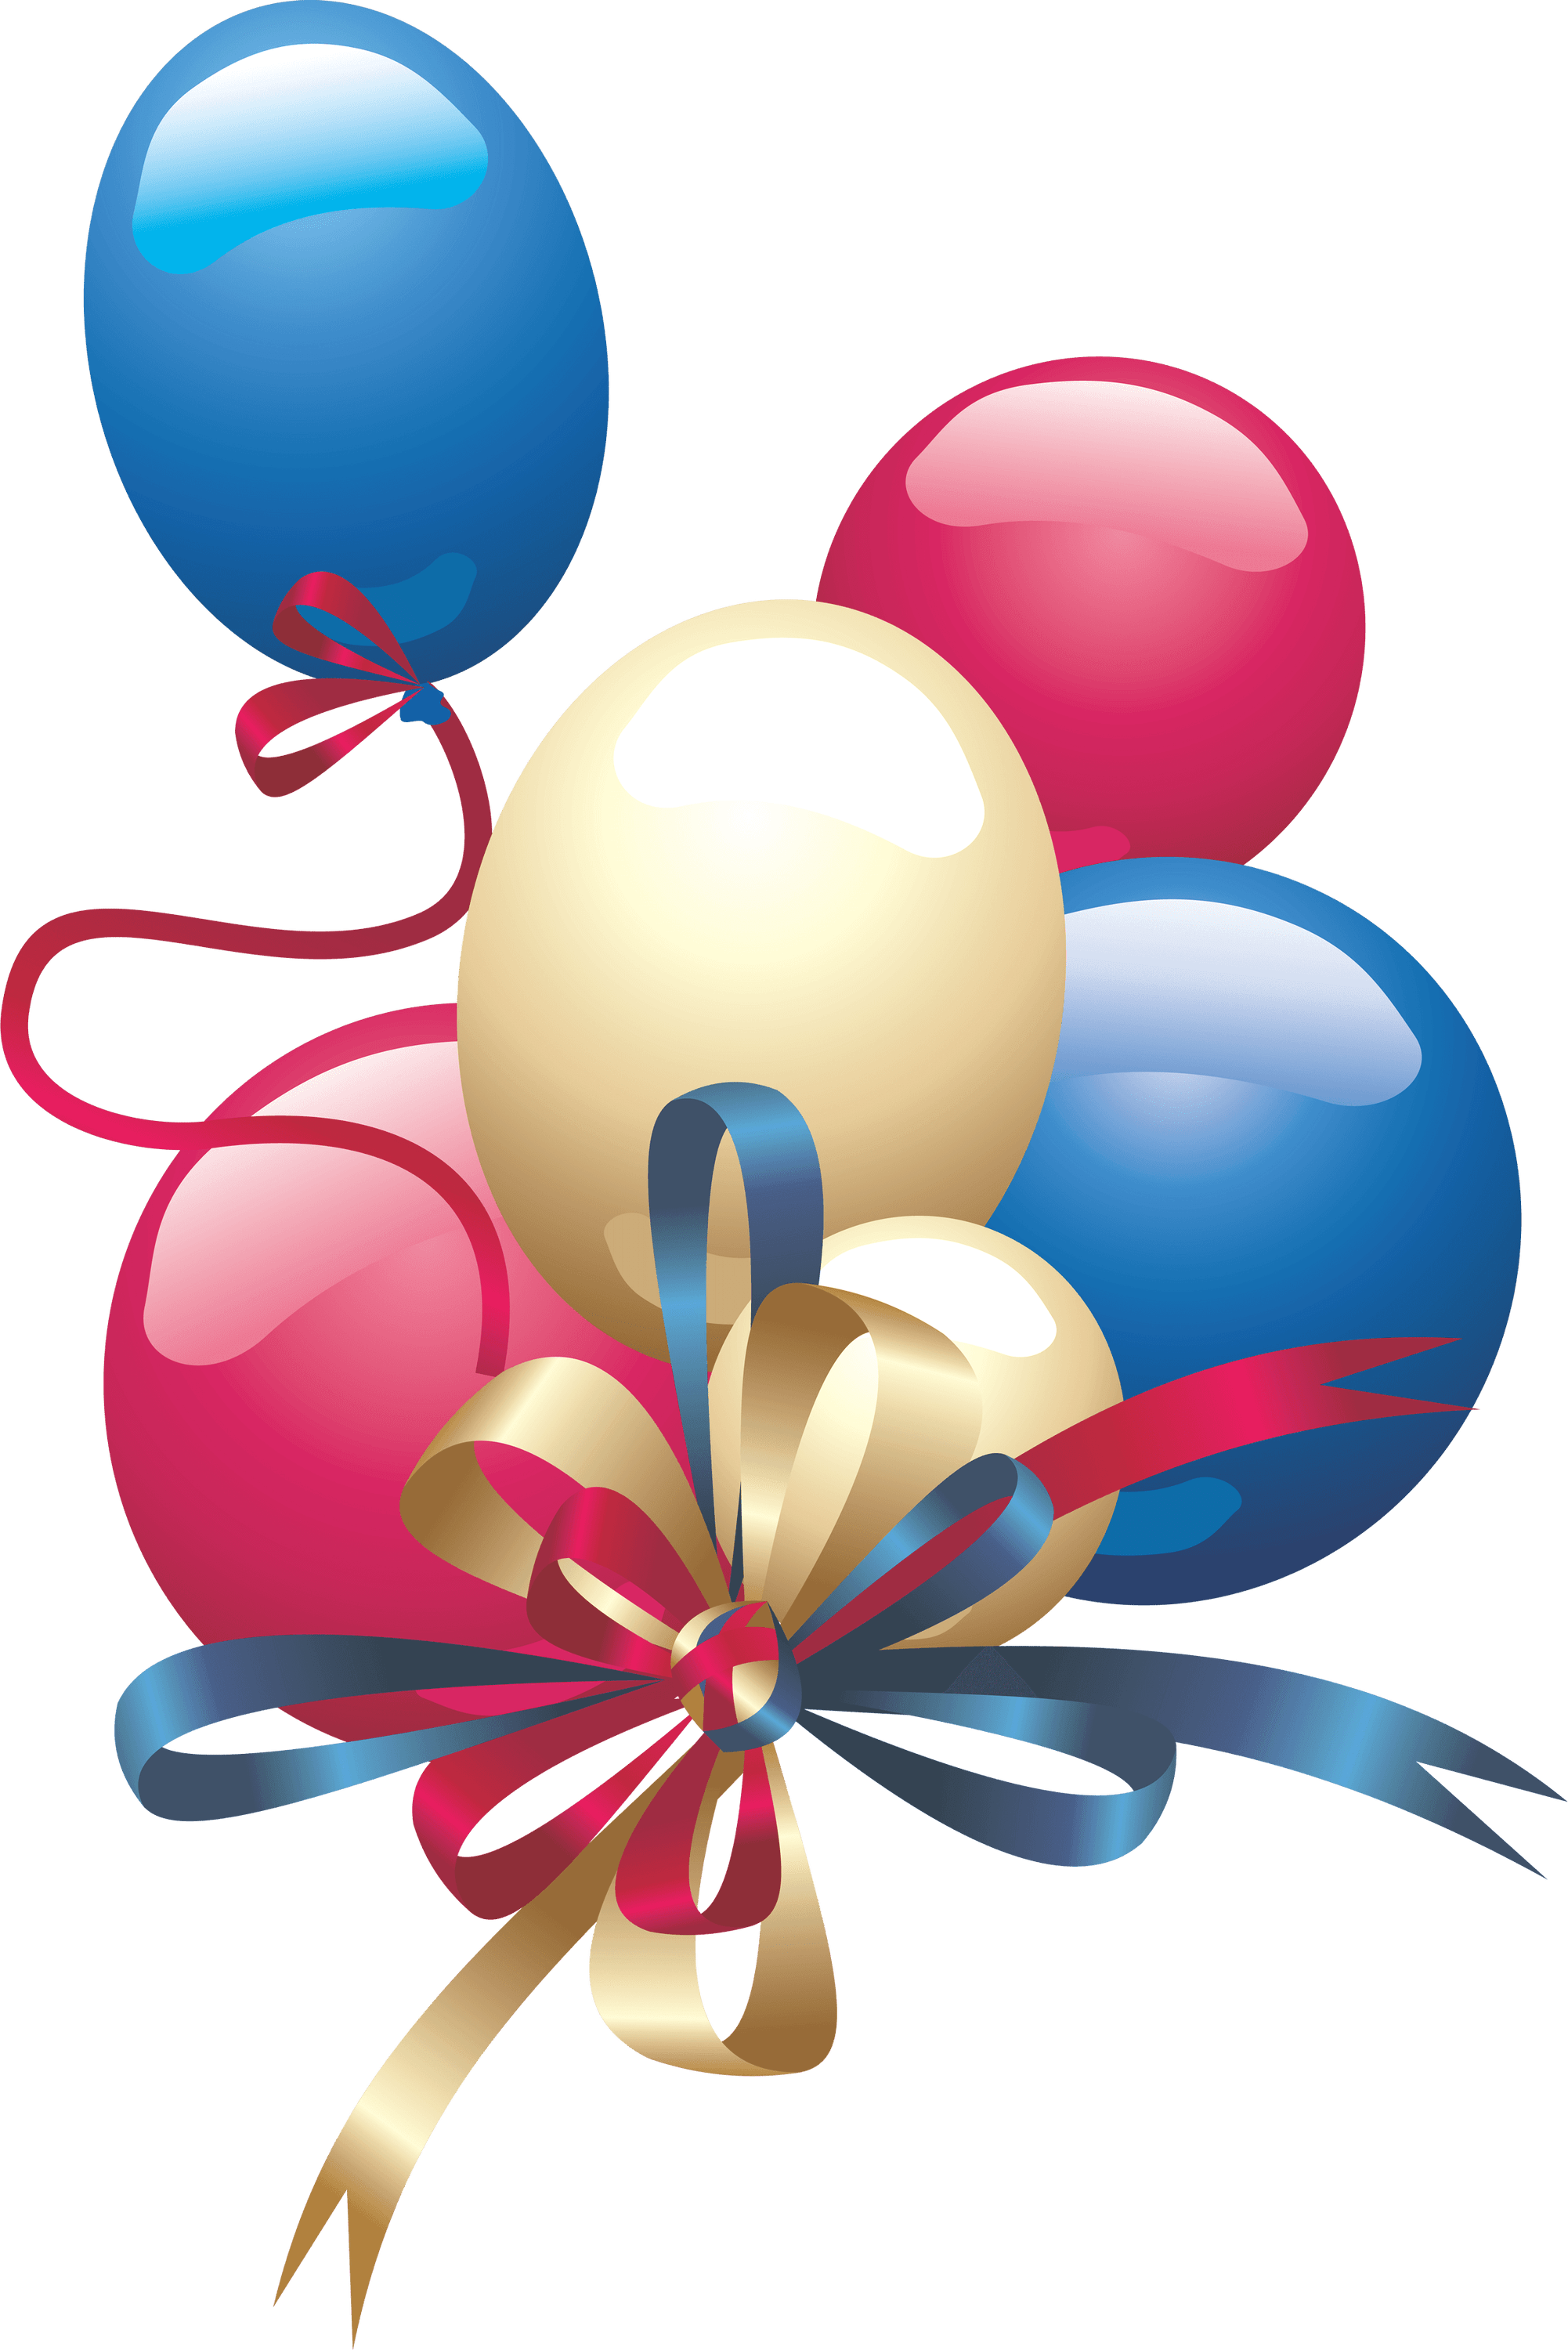 Party Balloon transparent PNG.